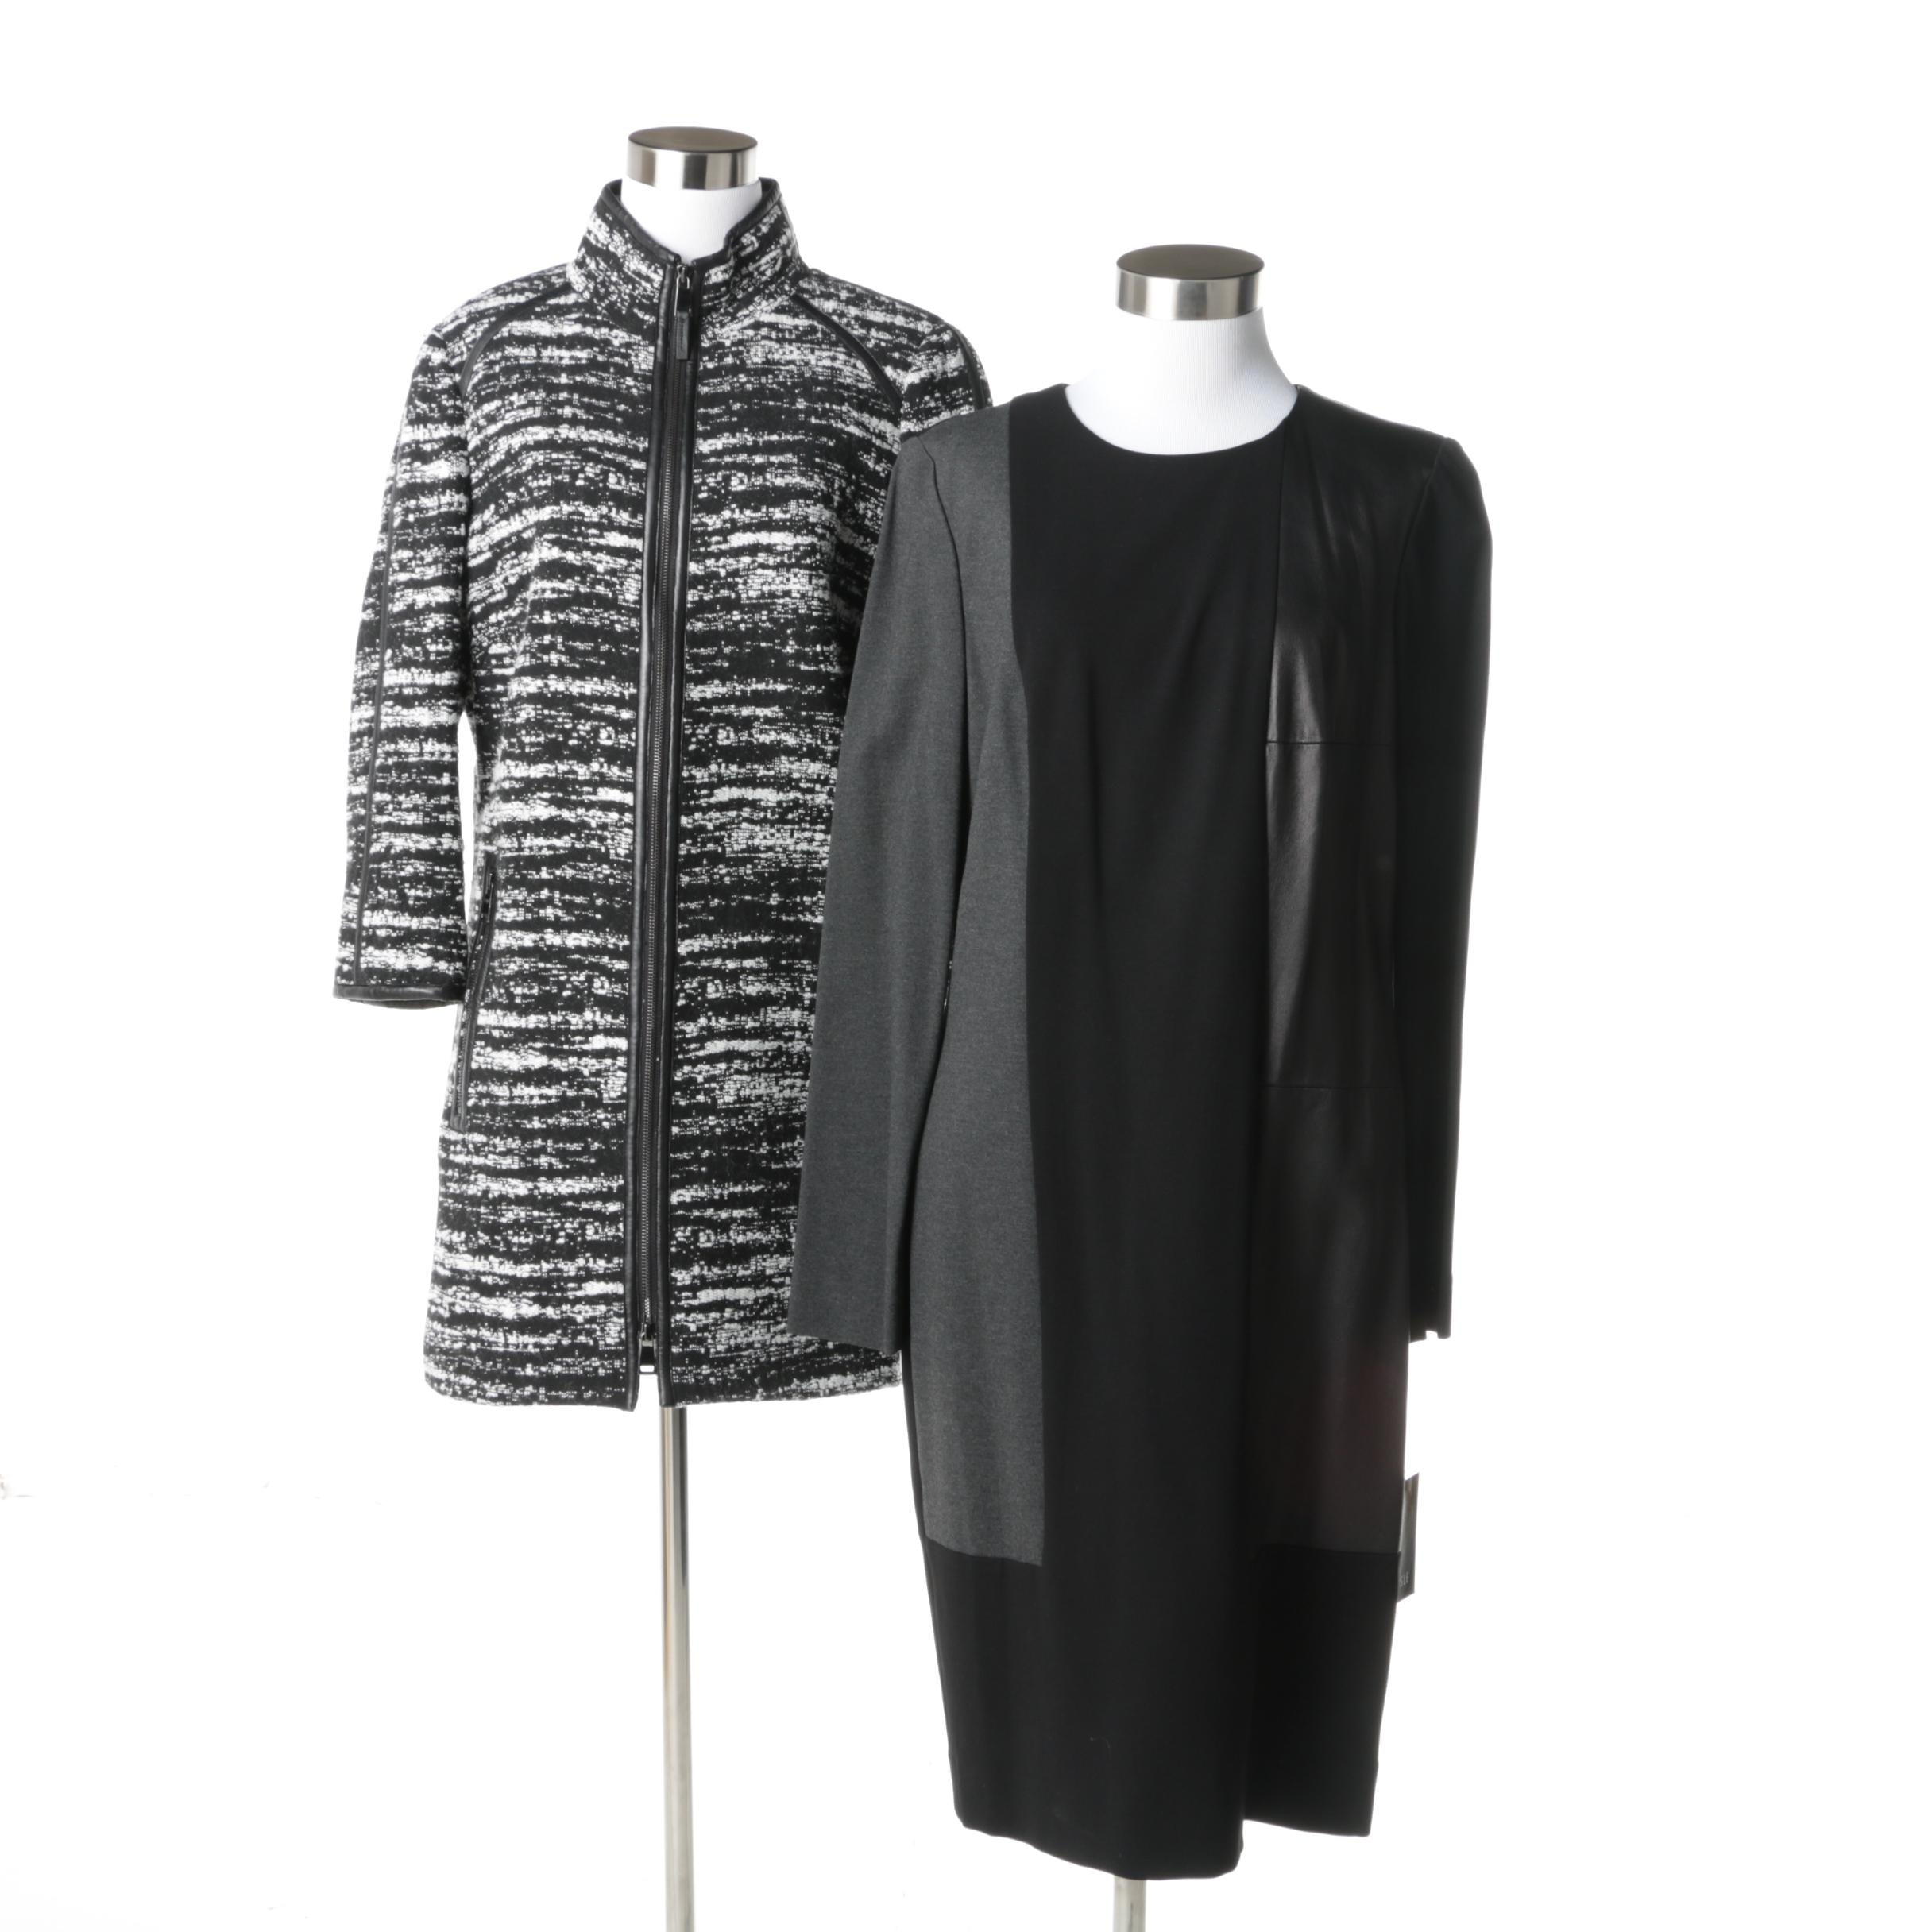 Carlisle Dress and Sweater Coat